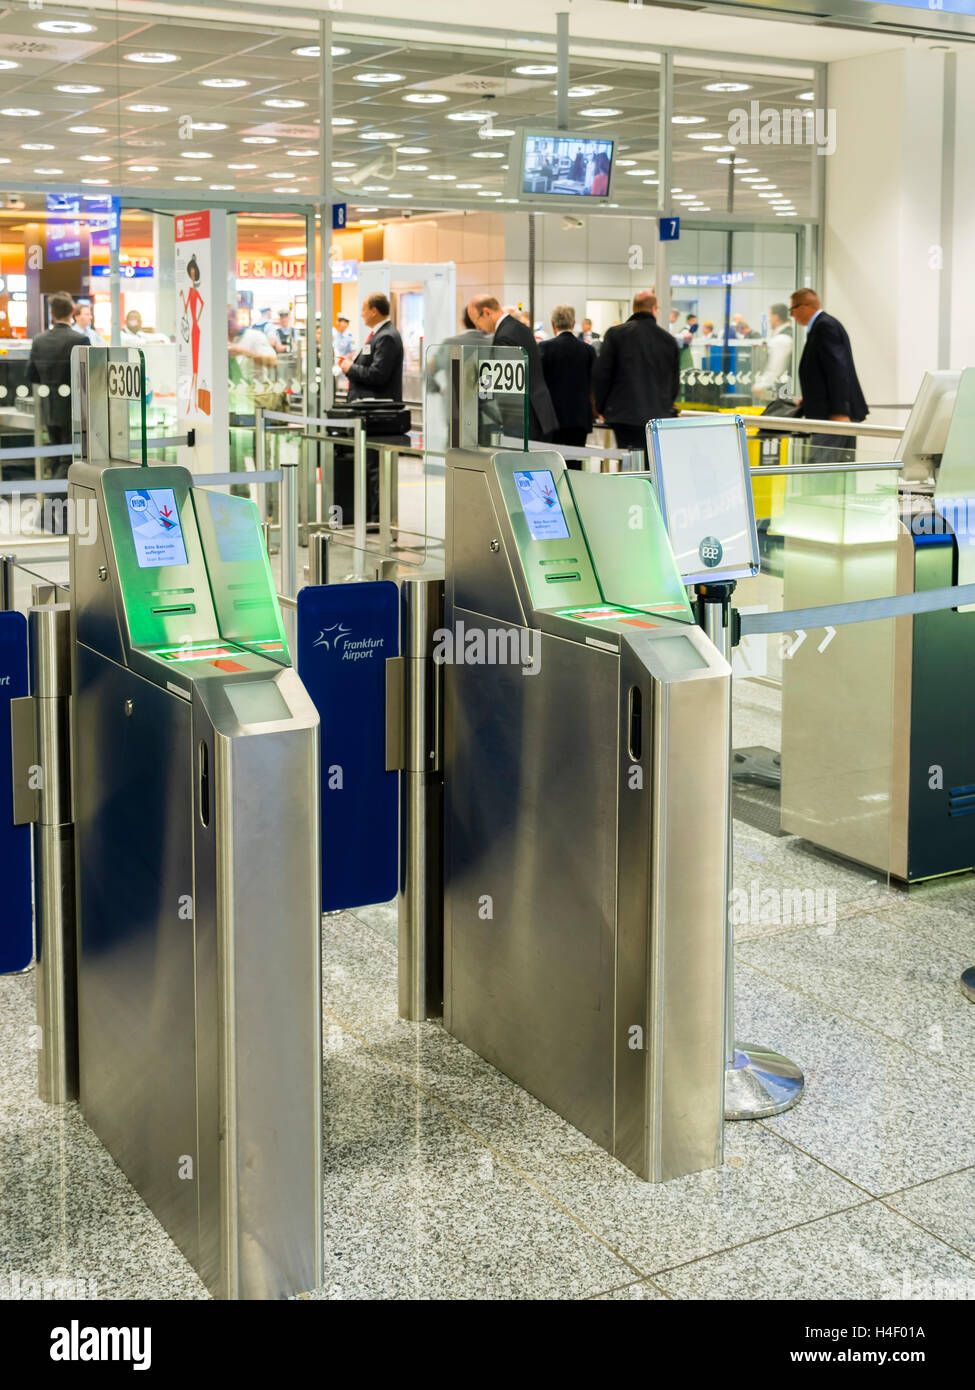 Admission gates in the departure area at the airport, Frankfurt, Hesse, Germany - Stock Image